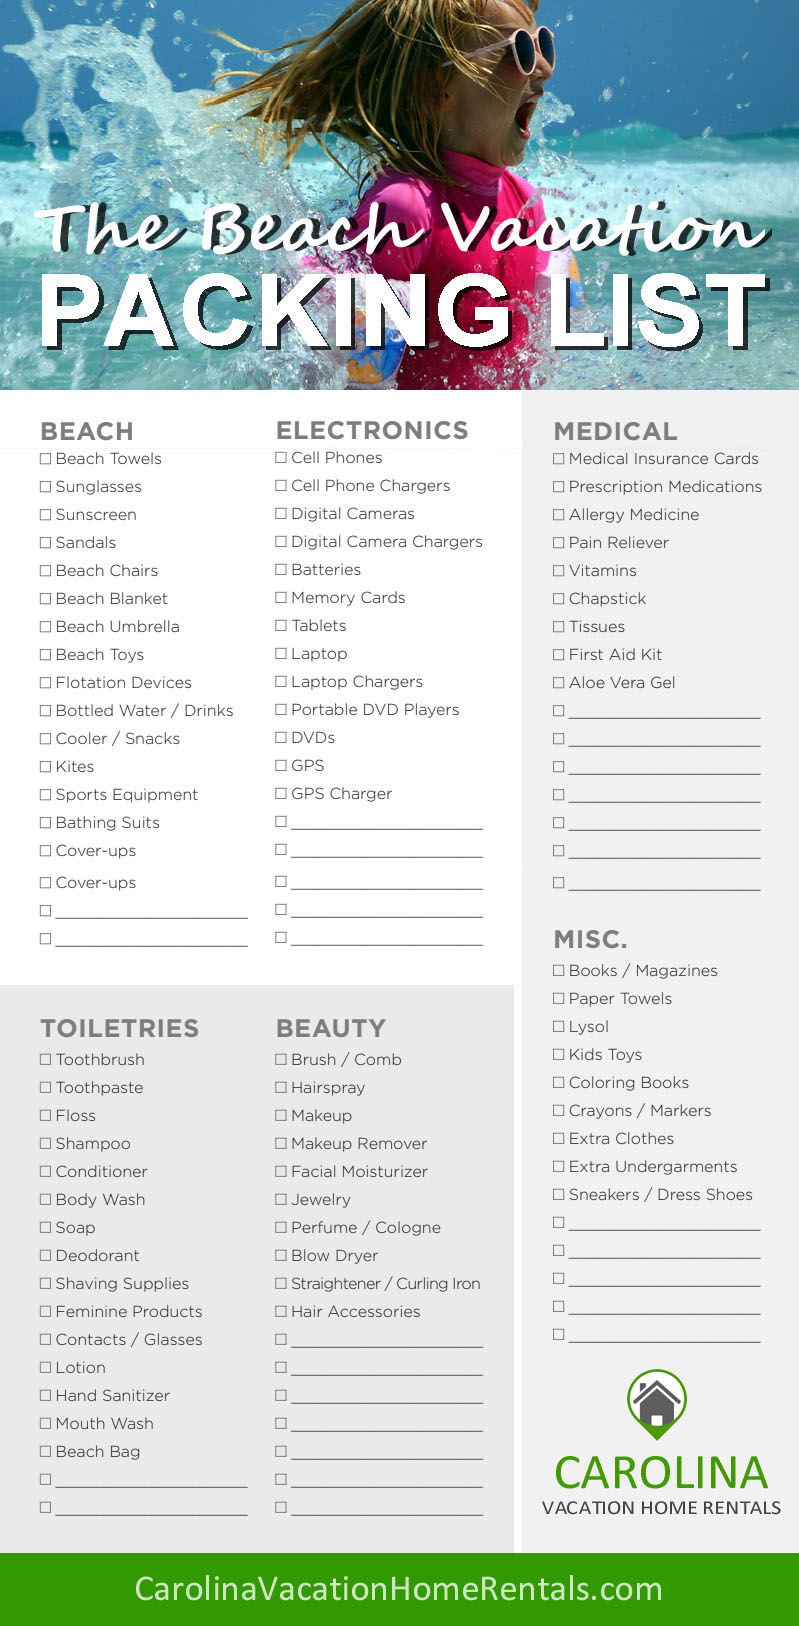 Beach Vacation Checklist Carolina Vacation Home Rentals